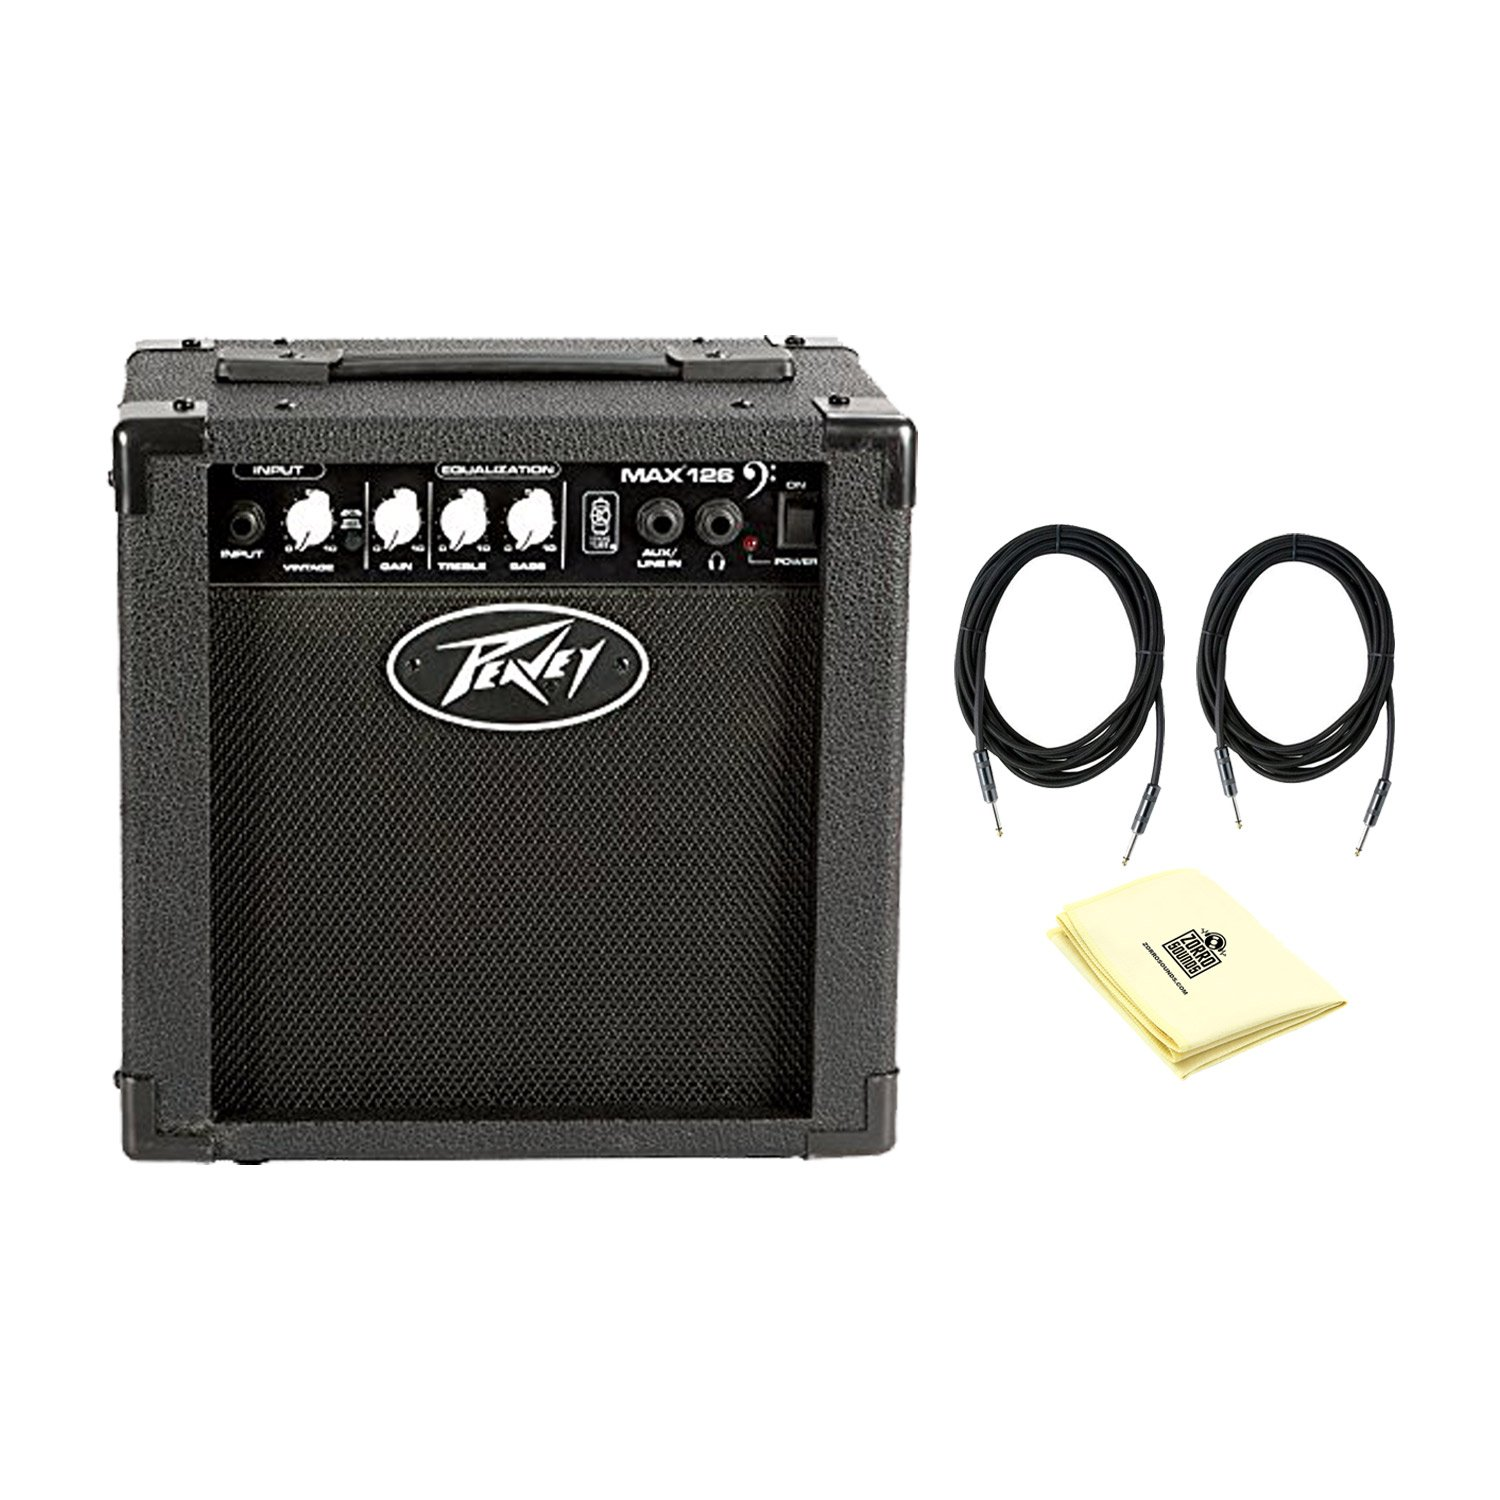 Peavey 03608290 Max 126 Bass Combo Amplifier With a Pair of Instrument Cables and Polishing Cloth